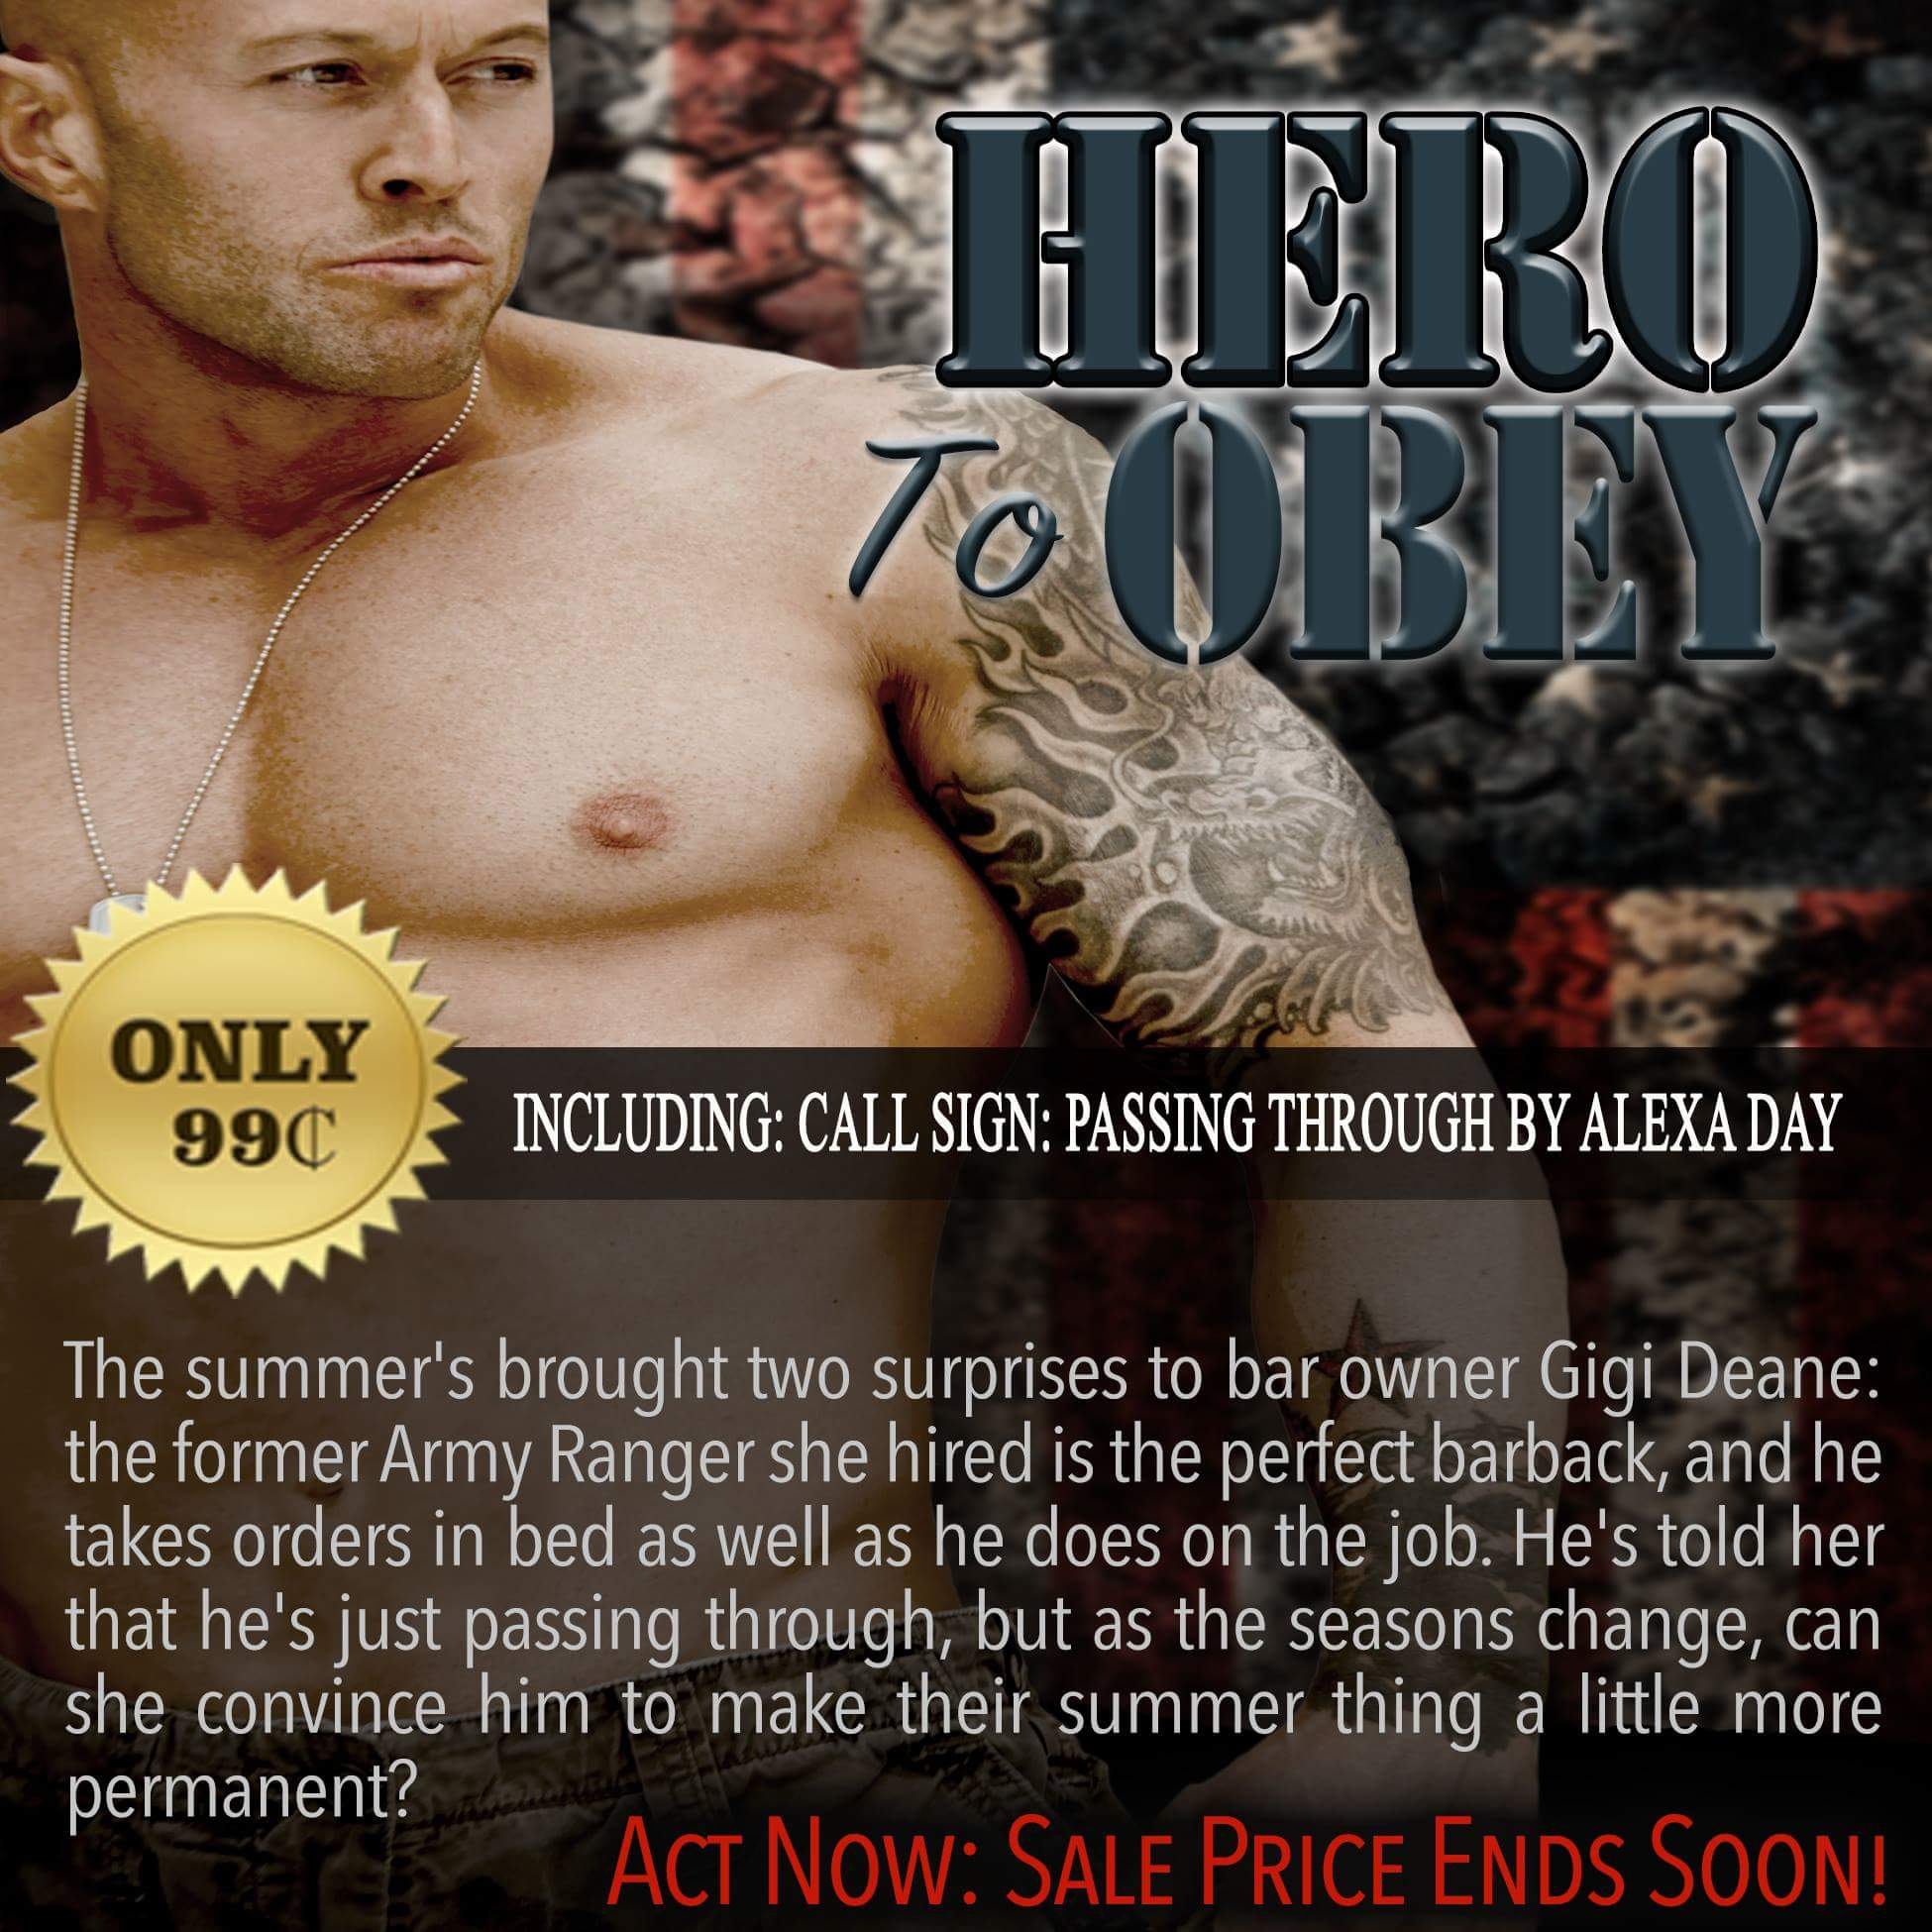 Hero To Obey Book Cover Model Actor John Joseph Quinlan by Alexa Day #JohnQuinlan #Hero2obey